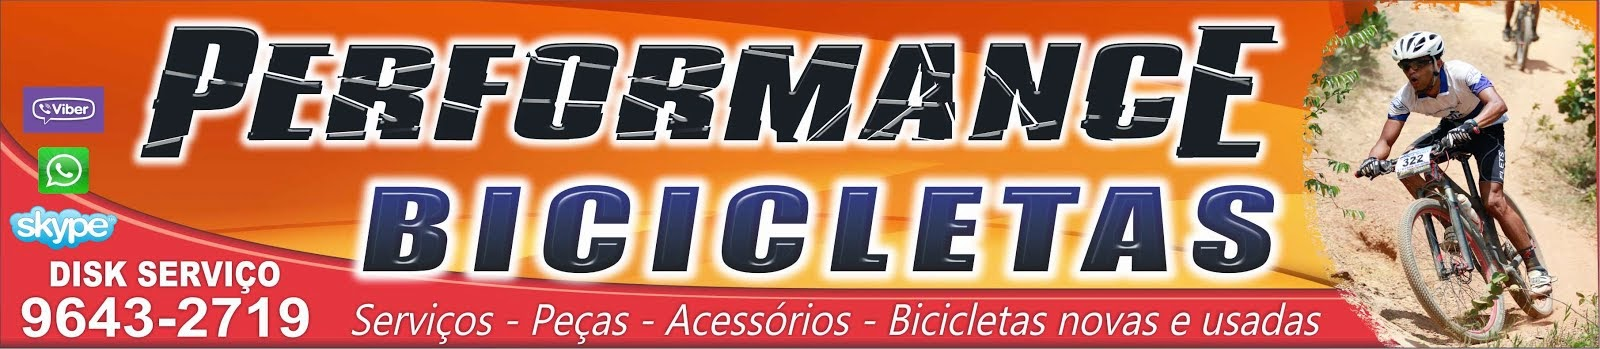 Performance Bicicletas